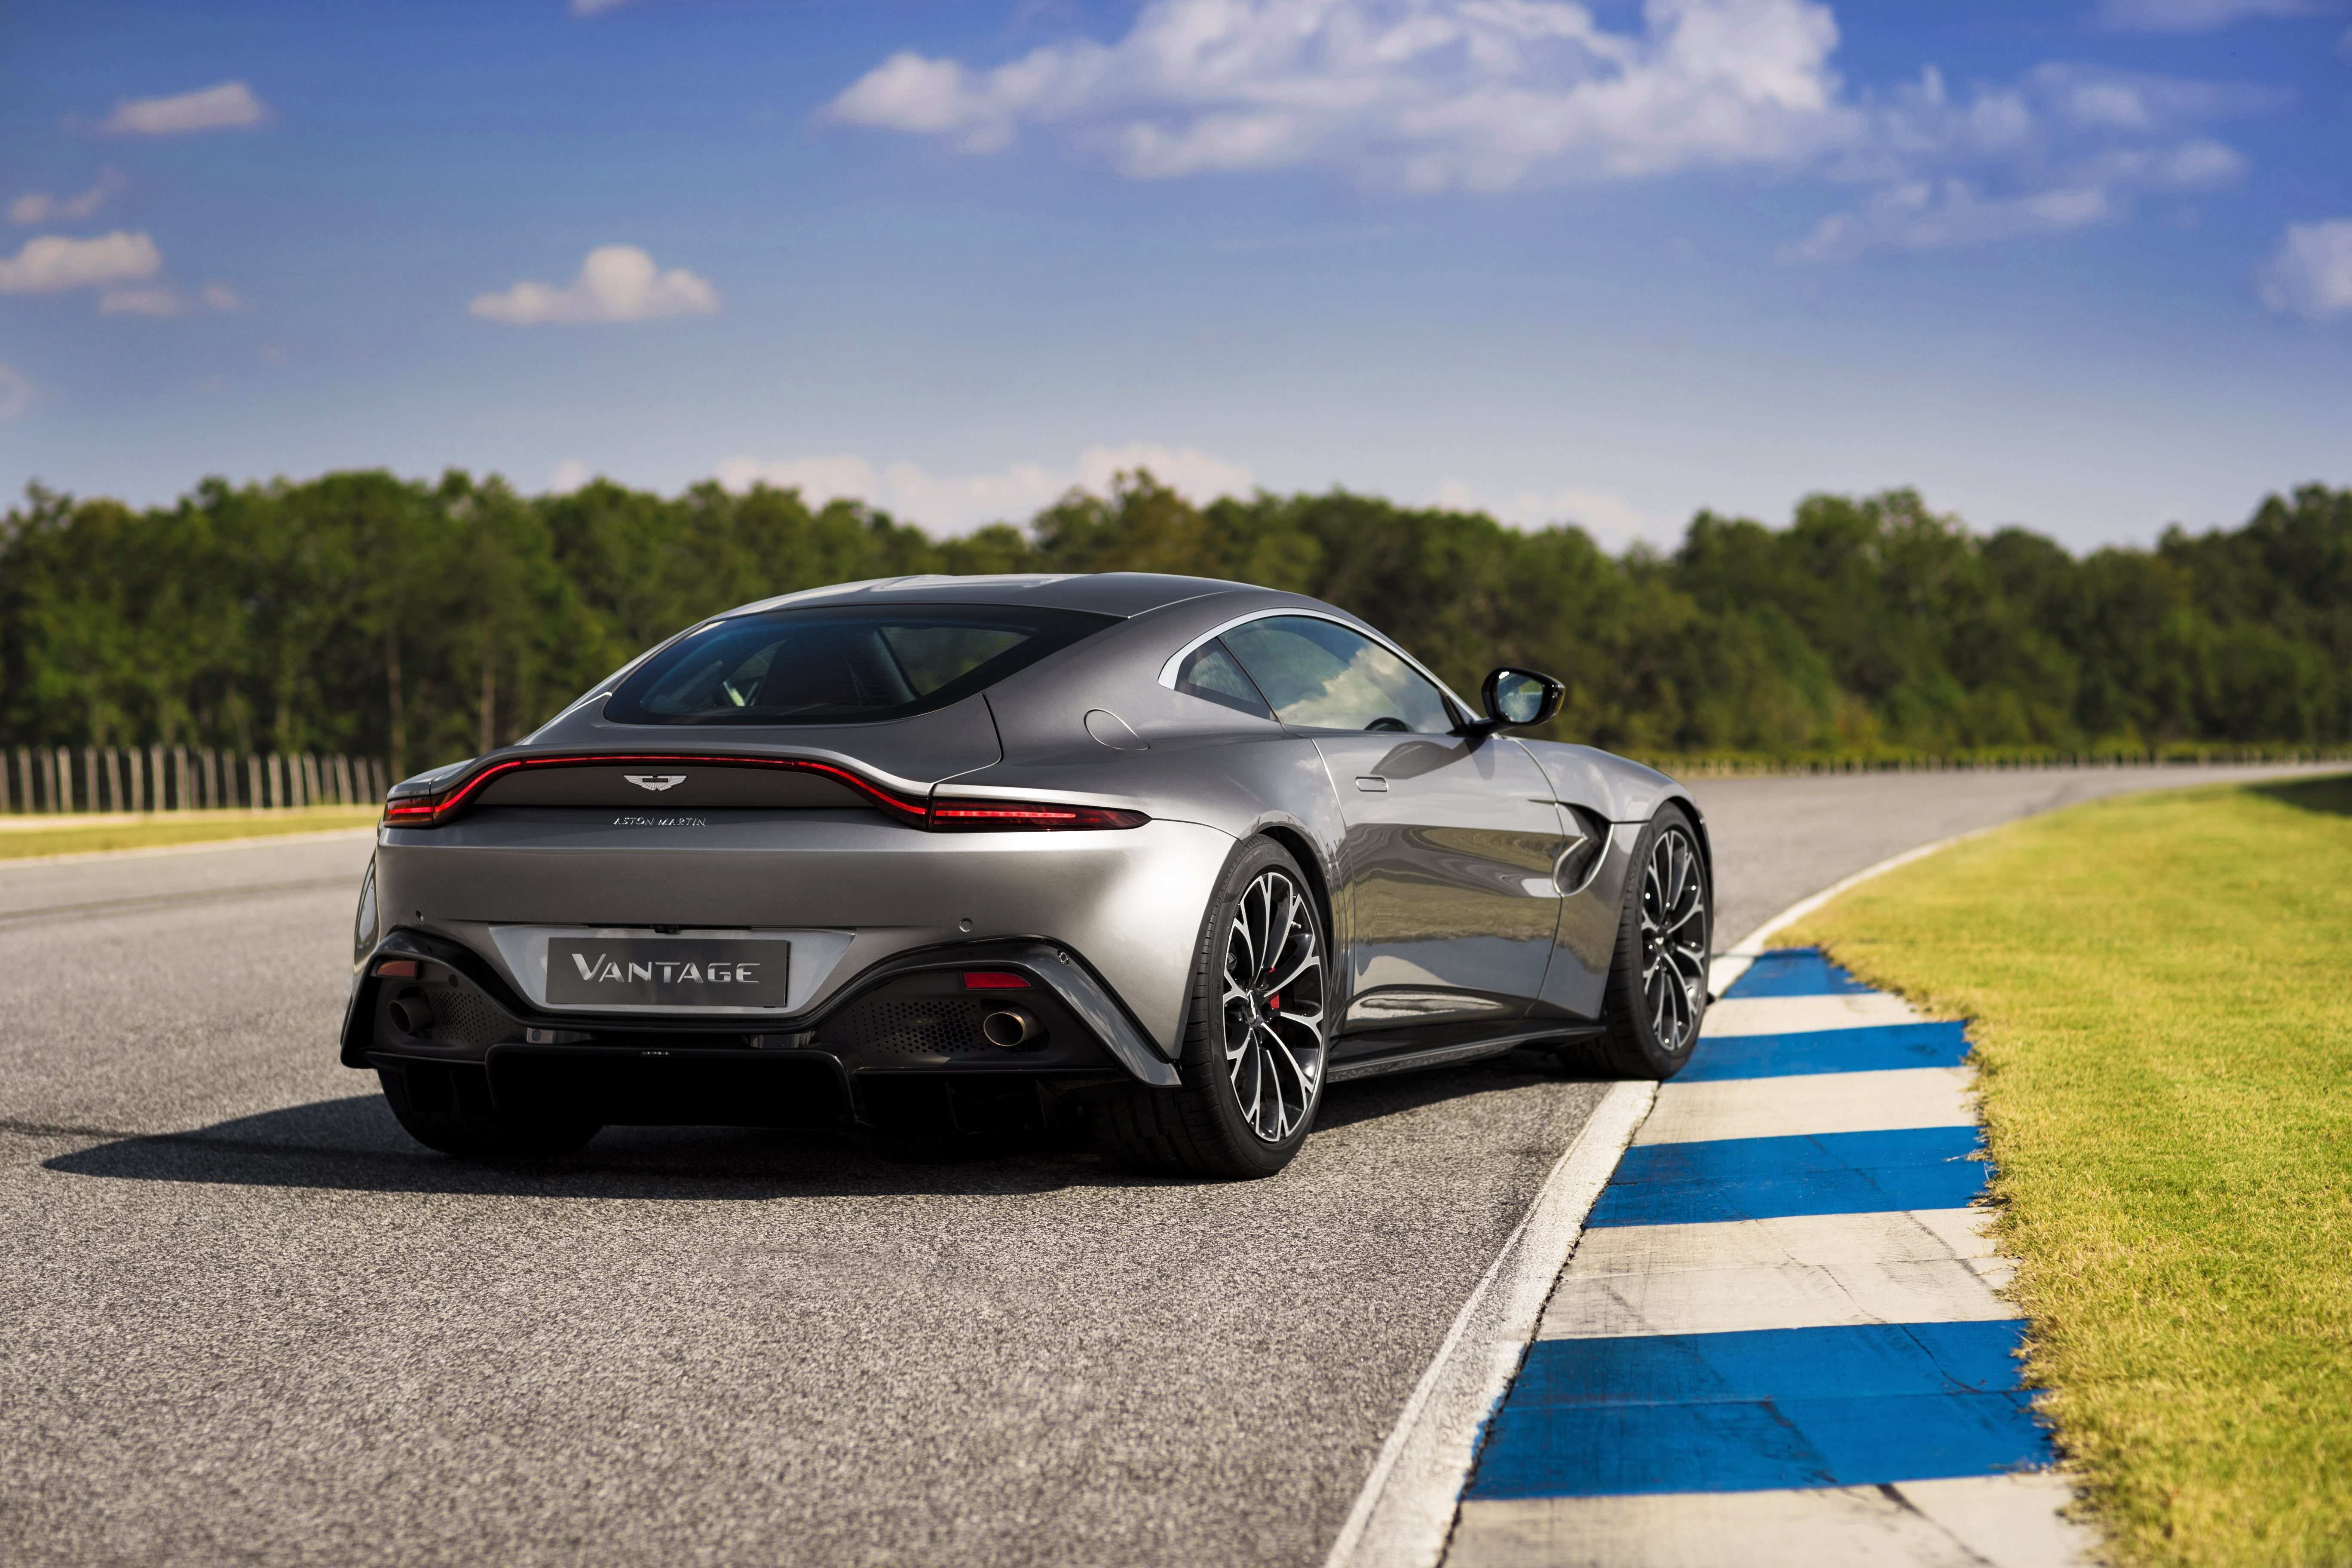 94 Best Review 2019 Aston Vantage Redesign and Concept with 2019 Aston Vantage